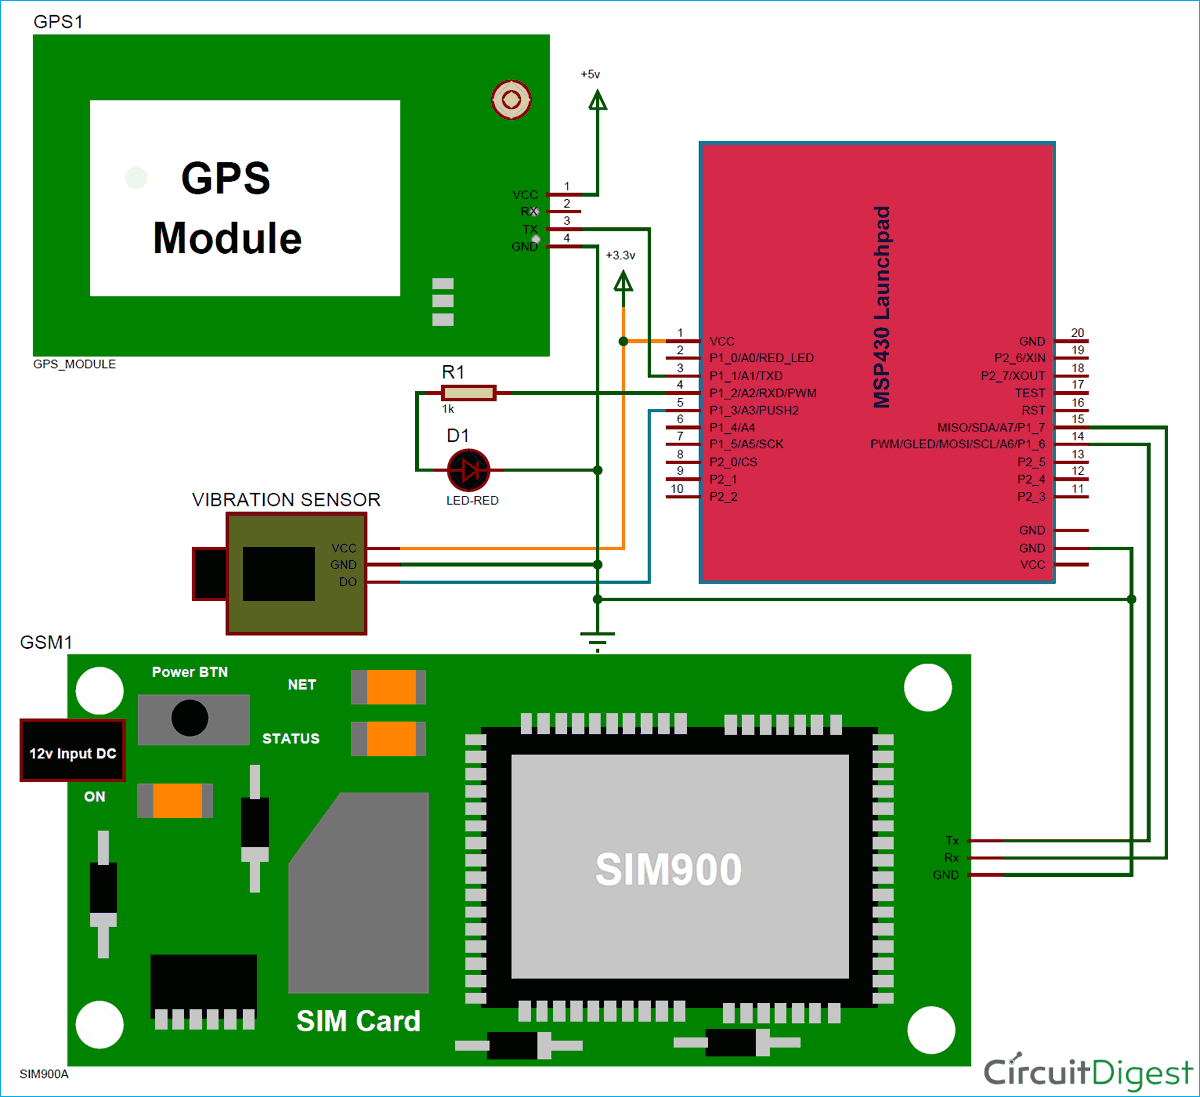 small resolution of circuit diagram for vehicle tracking and accident alert system using msp430and gps